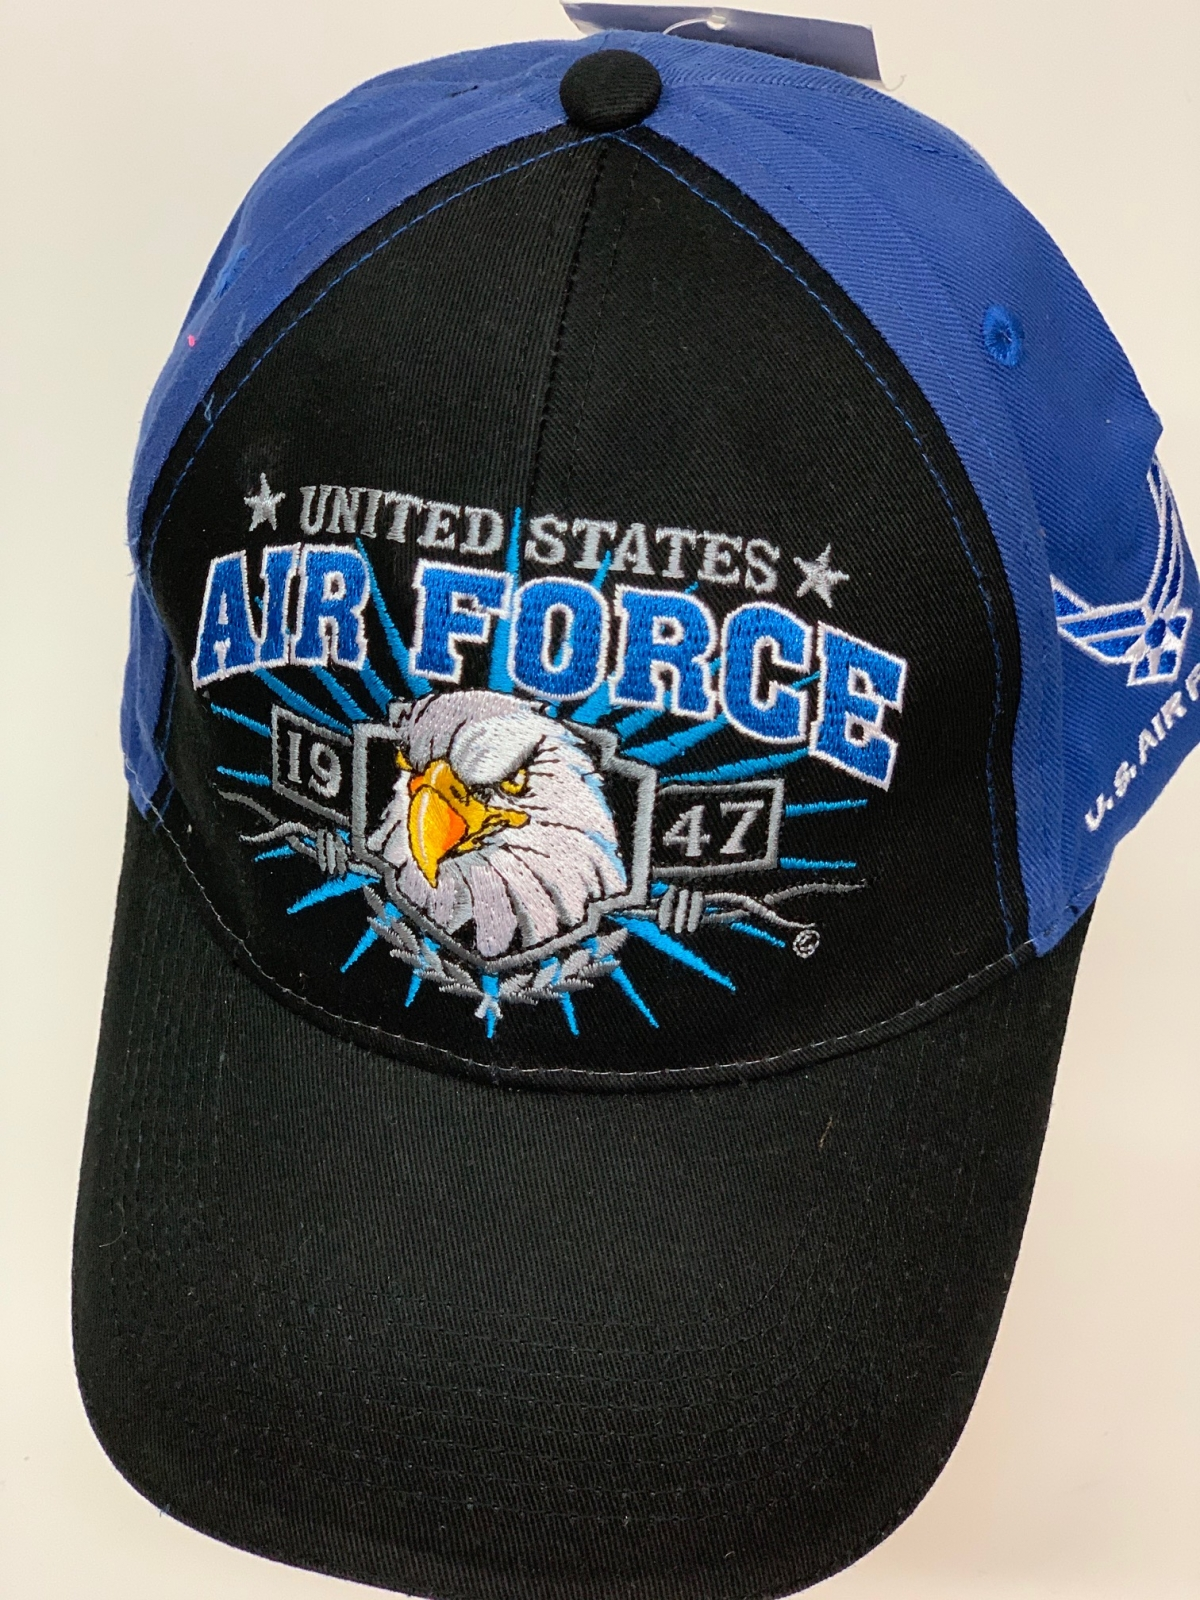 Бейсболка Air Force с орлом